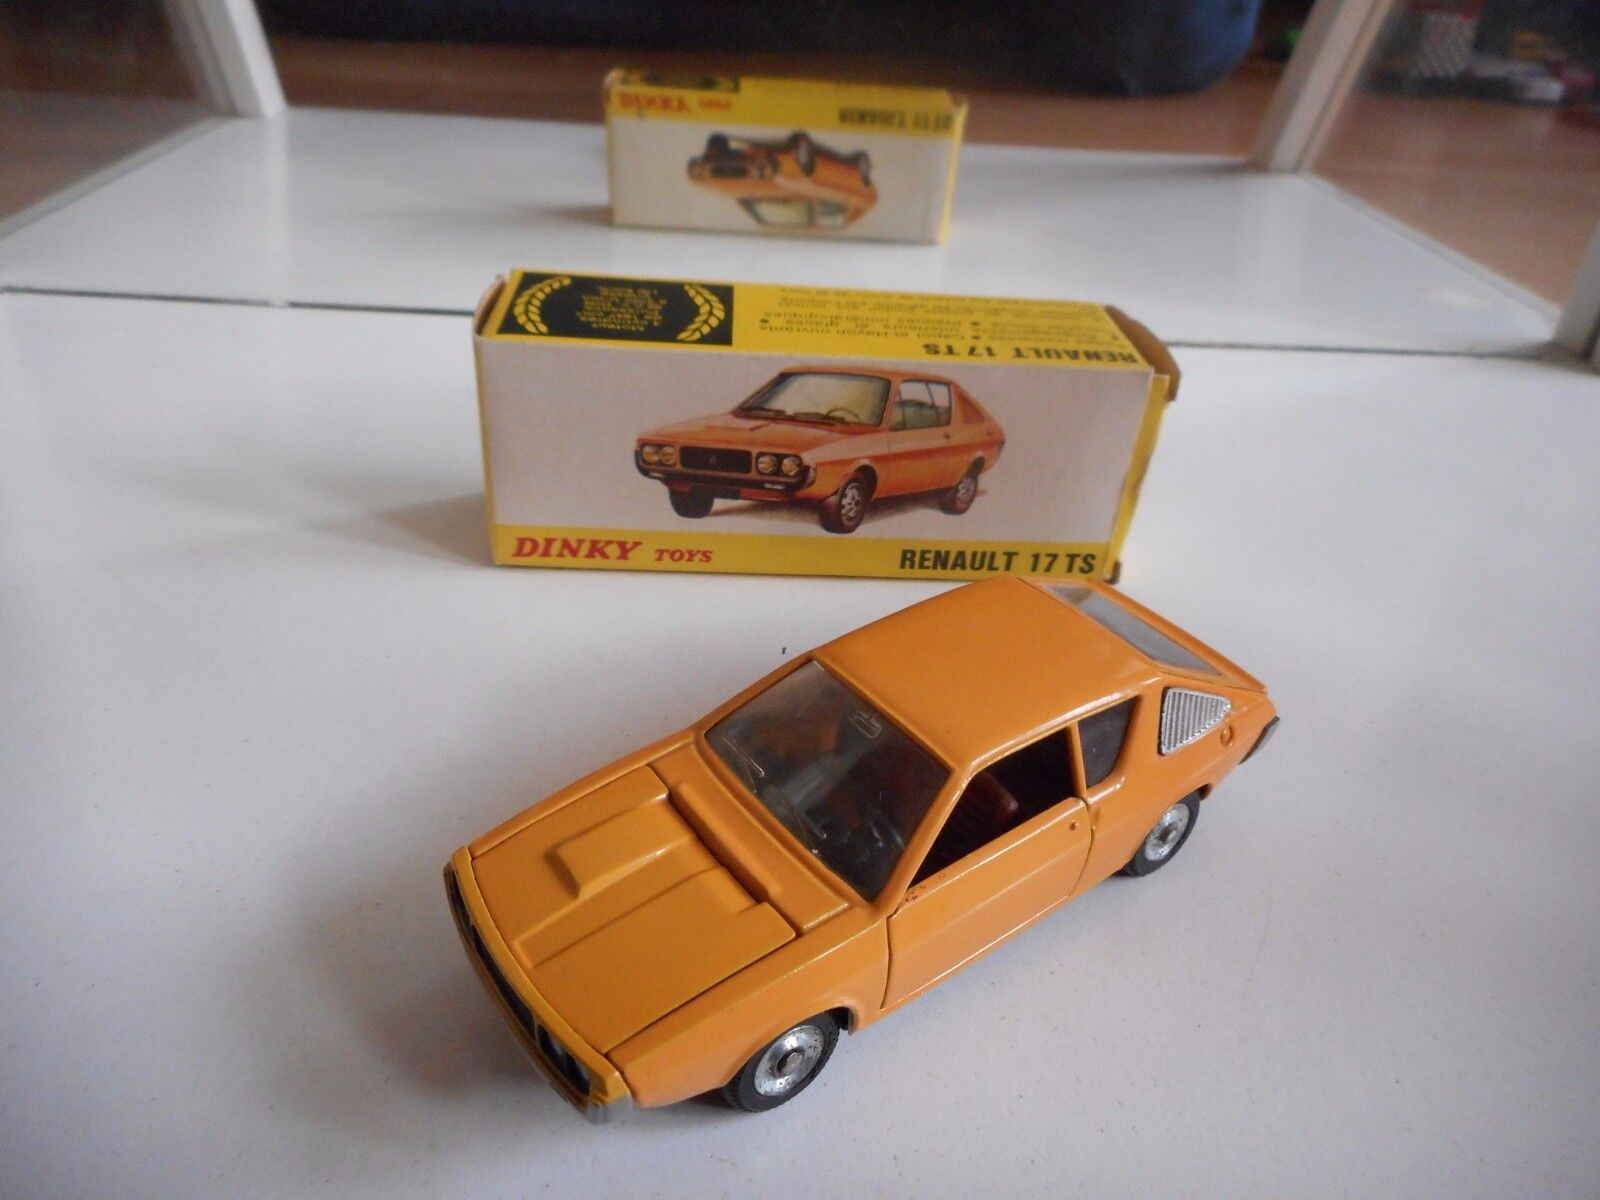 Dinky Toys Renault 17 TS in arancia on 1:43 in Box  Made in Spain